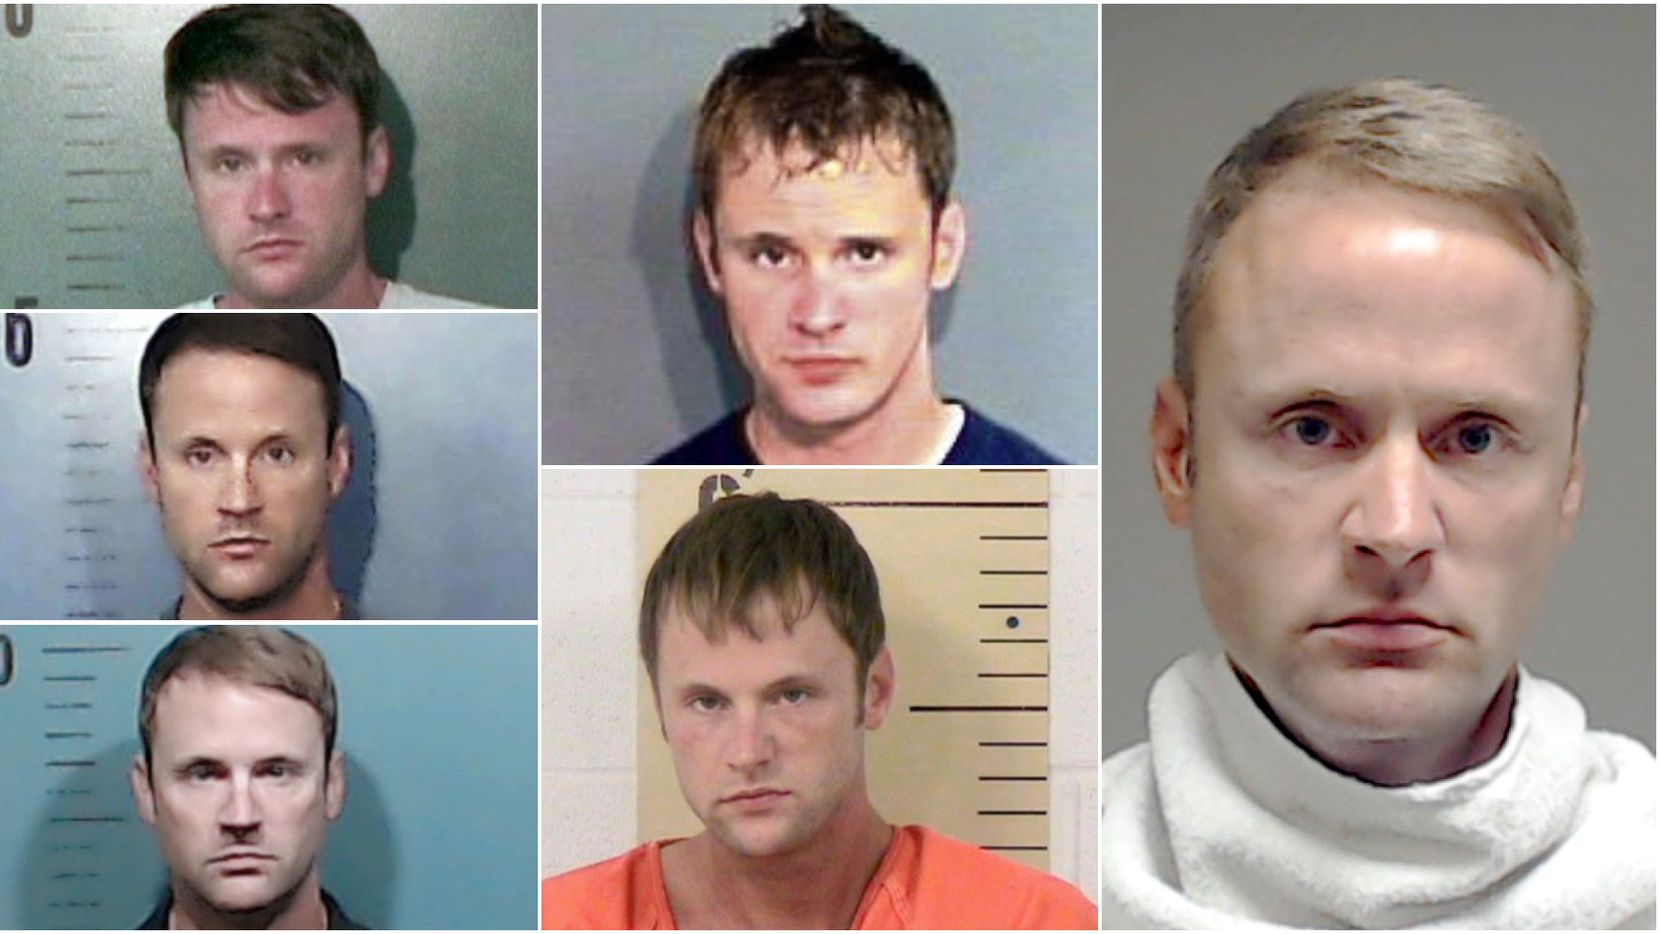 These are some of the jail booking mugs for John Wright Martin, who has been arrested multiple times in Texas. On the left are are mugshots from Taylor County in 2013, 2017 and 2018. The center column has mugshots from Brazos County in 2006 and Burnet County in 2010. The far right is Martin's booking mug in Collin County after his felony drunken-driving arrest on April 22, 2016. Martin is accused of stealing money while working as a personal assistant for Gearbox Software CEO Randy Pitchford and his wife, Kristy Pitchford.